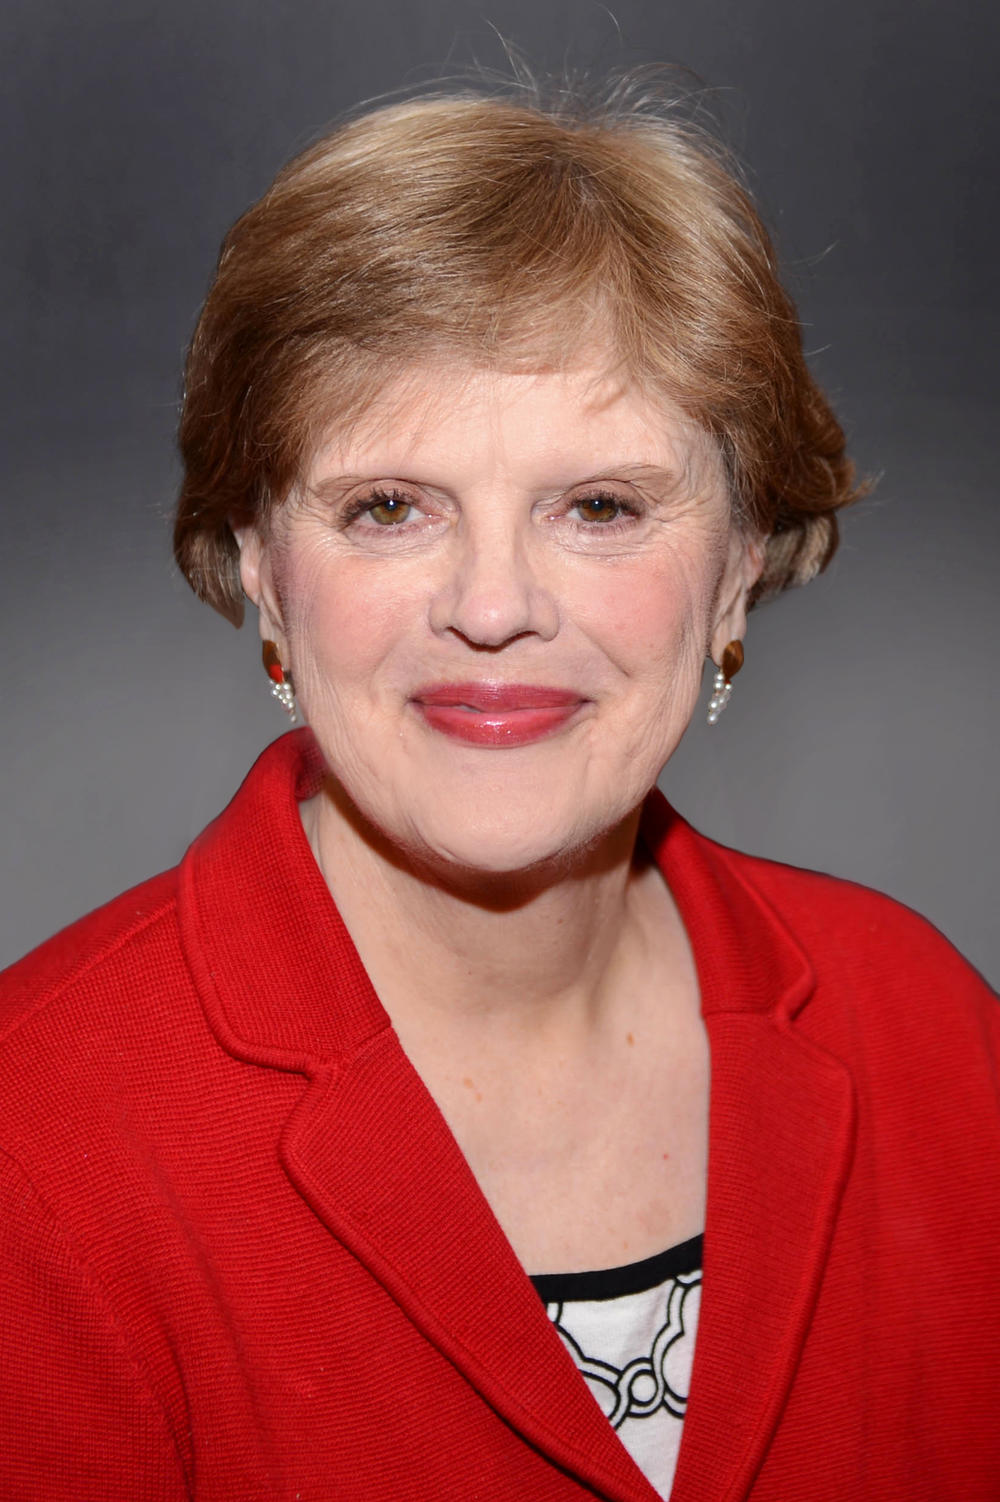 State Rep. Mary Frances Williams